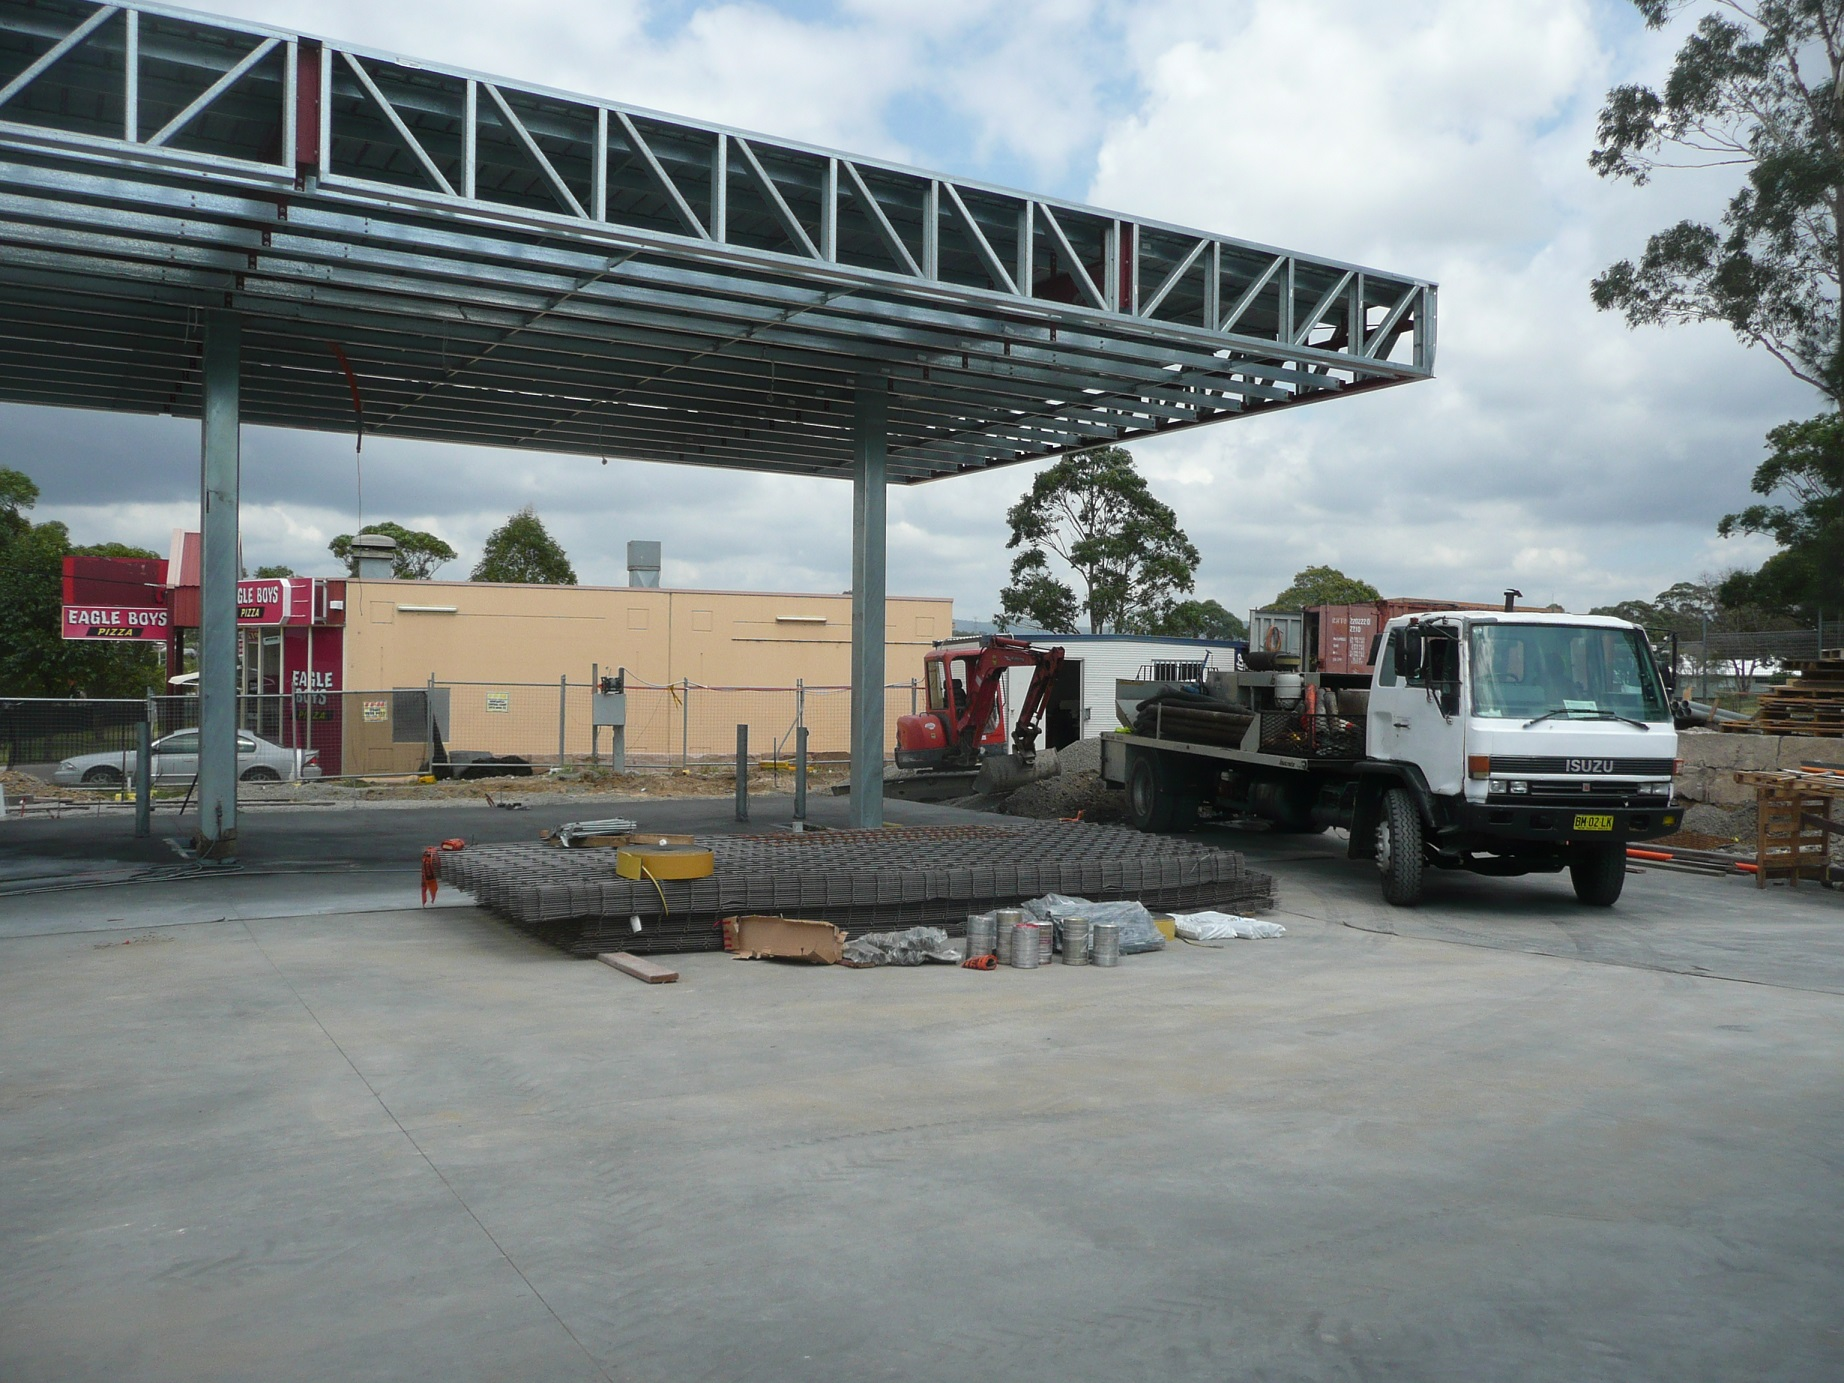 Structural steel awning design service station